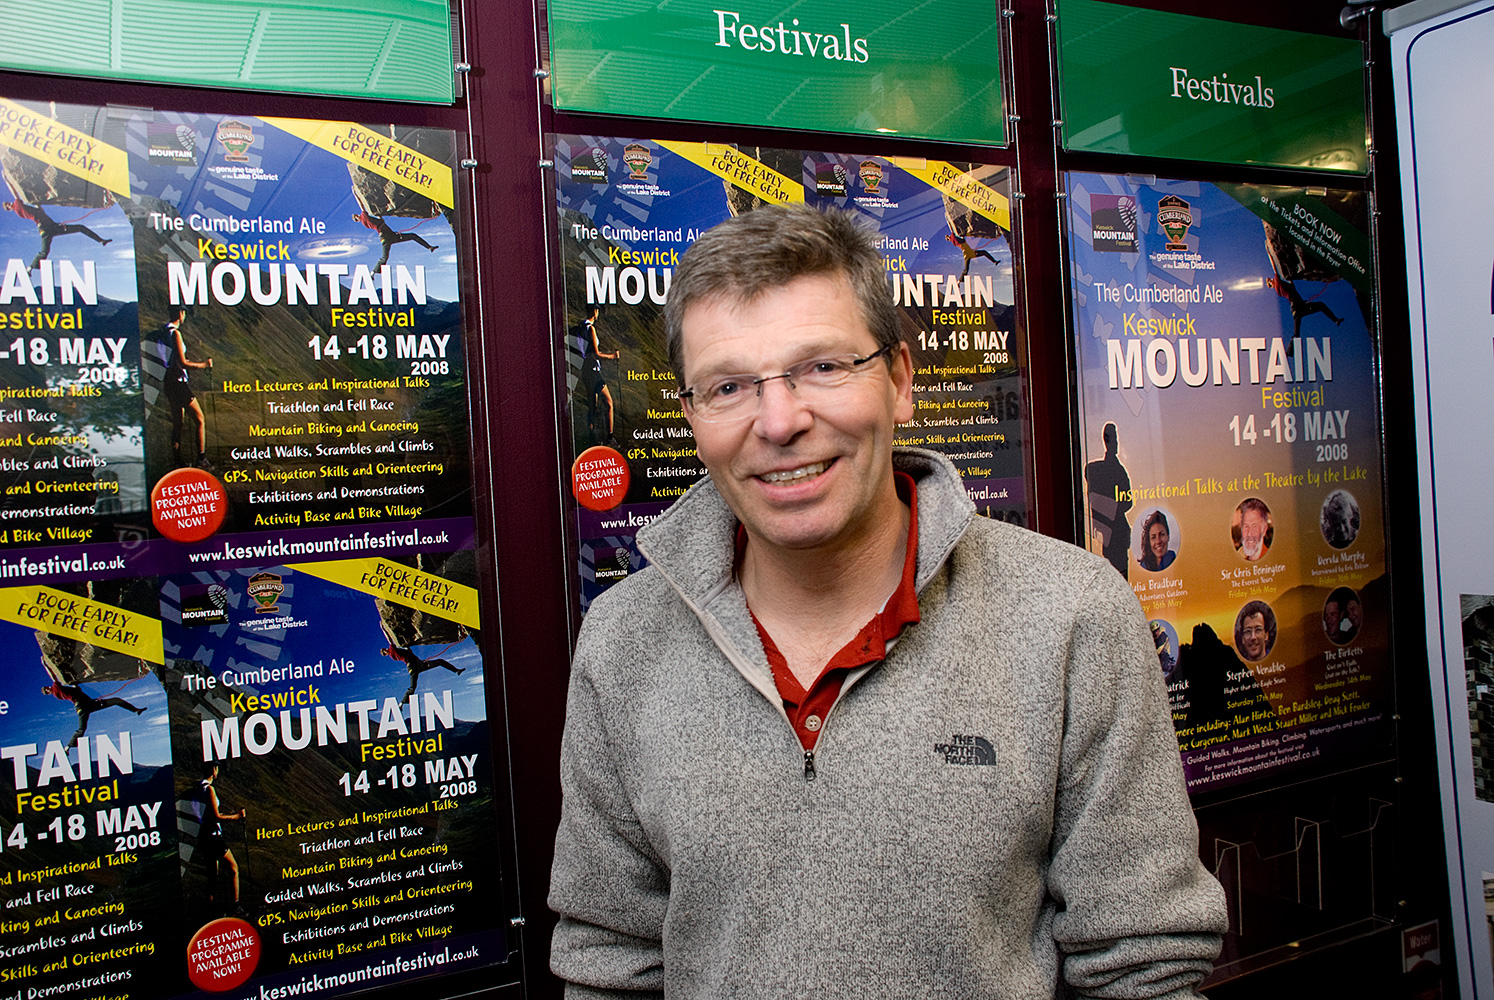 At the Keswick Mountain Festival 2008.Michael {quote}Mick{quote} Fowler (born 1956 in London) is an award-winning British mountaineer and author.He was voted the {quote}Mountaineers' Mountaineer{quote} in a poll in The Observer and, with Paul Ramsden, won the 2002 Piolet d'Or and Golden Piton awards for their ascent of 6,250-metre (20,510 ft) Mount Siguniang in the Qionglai Mountains in the Sichuan Province of China. In 2012, he was awarded the King Albert award for his {quote}outstanding contribution to mountaineering{quote}, and in 2013, he and Paul Ramsden became the first pair to win a Piolet d'Or award twice after their ascent of the 6,142-metre (20,151 ft) Prow of Shiva in the Indian Himalayas. Respect!